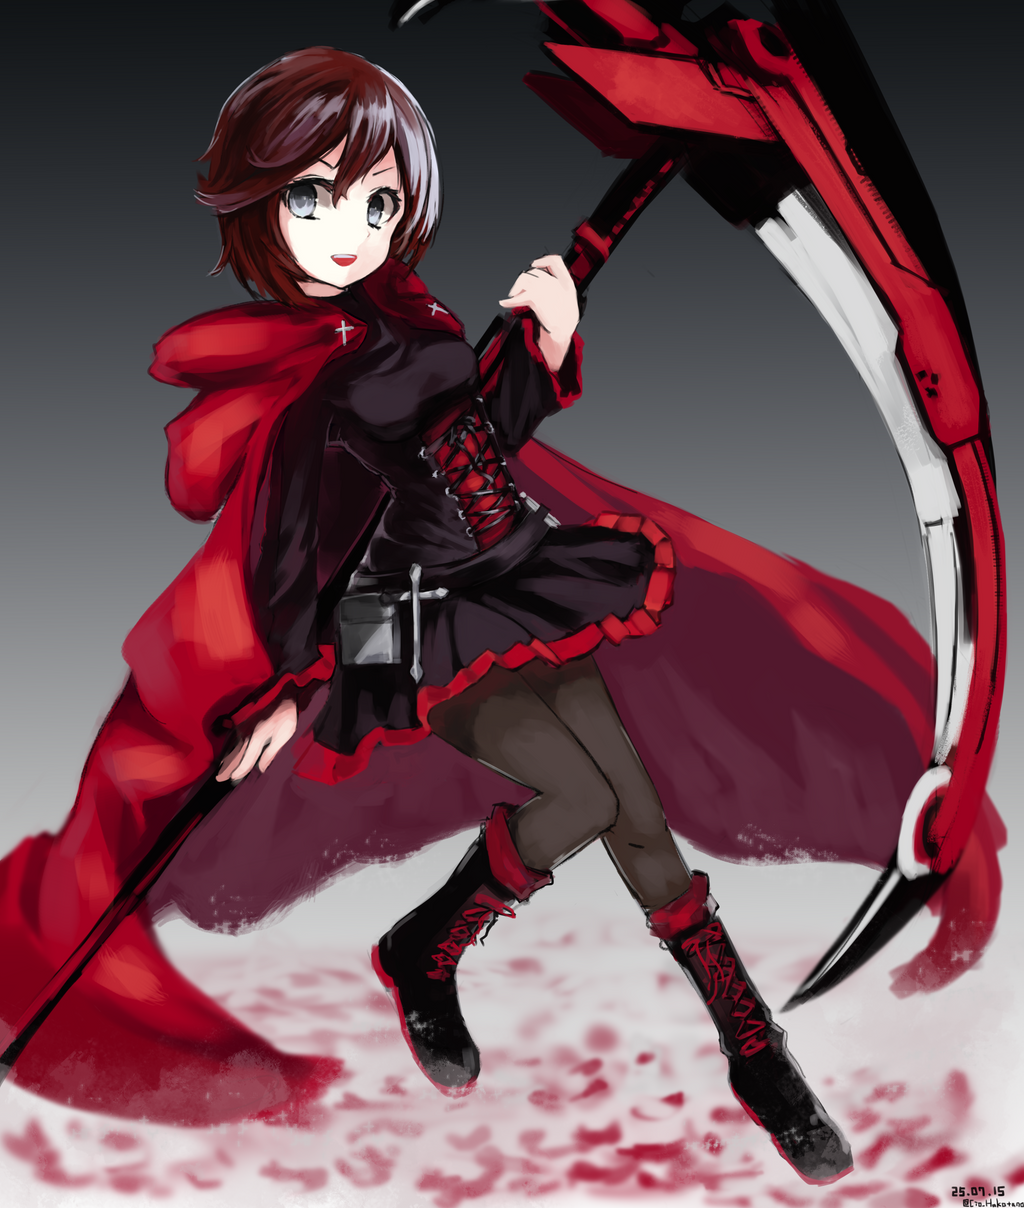 Ruby in clothes with more folds than an origami accordion ...  |Ruby Red Fan Art